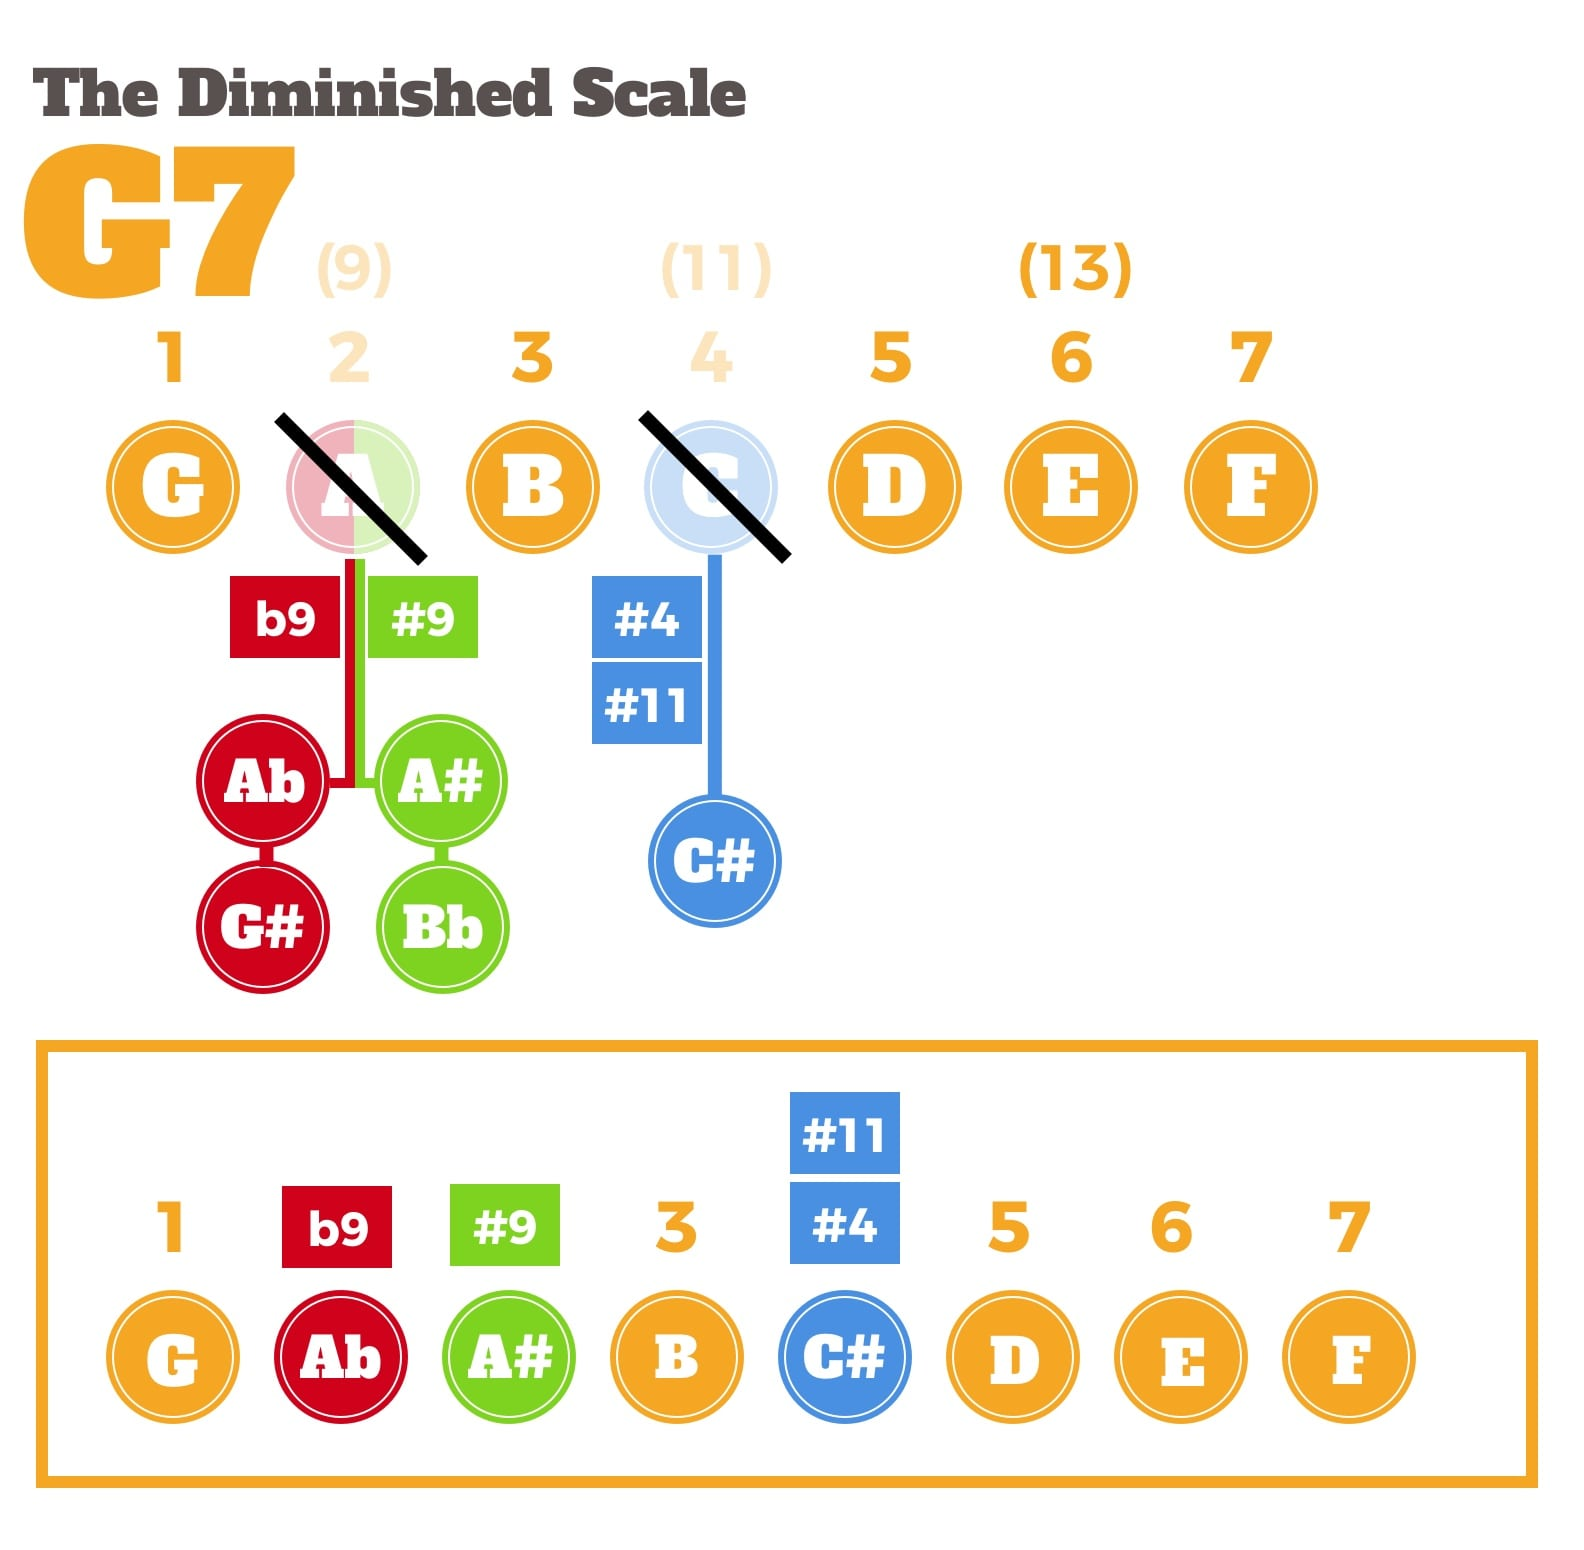 Diminshed scale on dominant